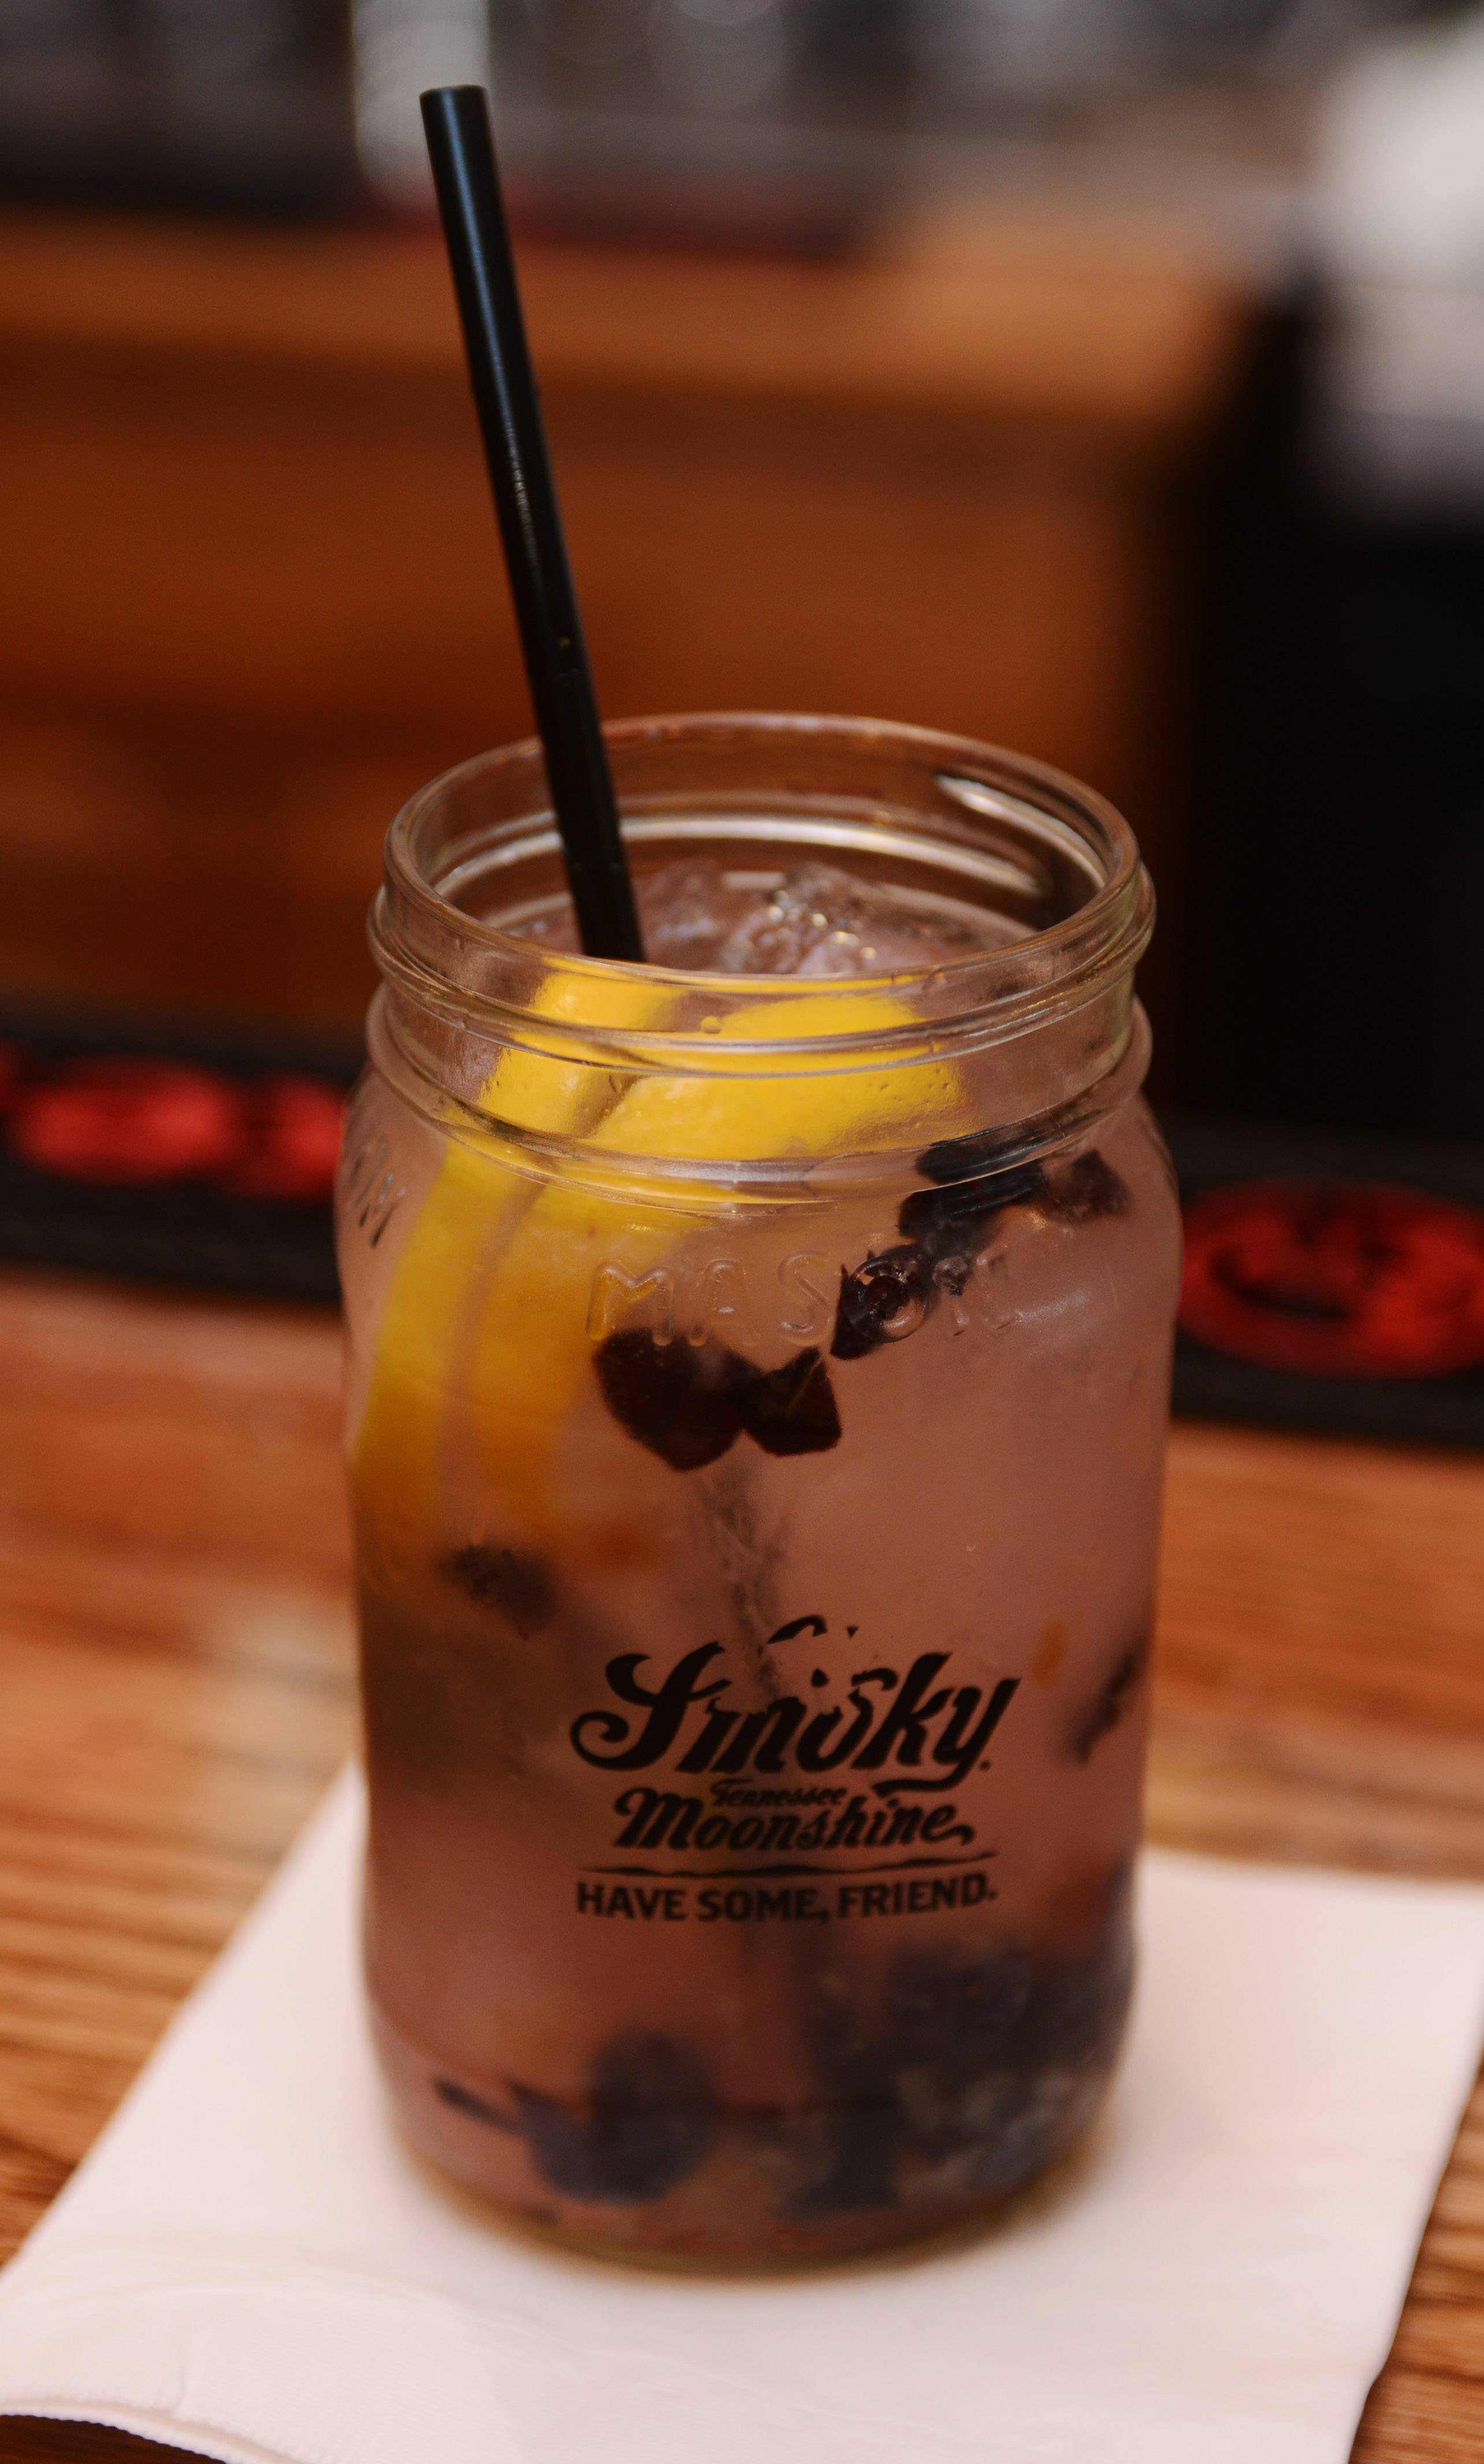 The Bees Knees is one of the prohibition-era moonshine cocktails at The Still Bar and Grill in Bartlett.